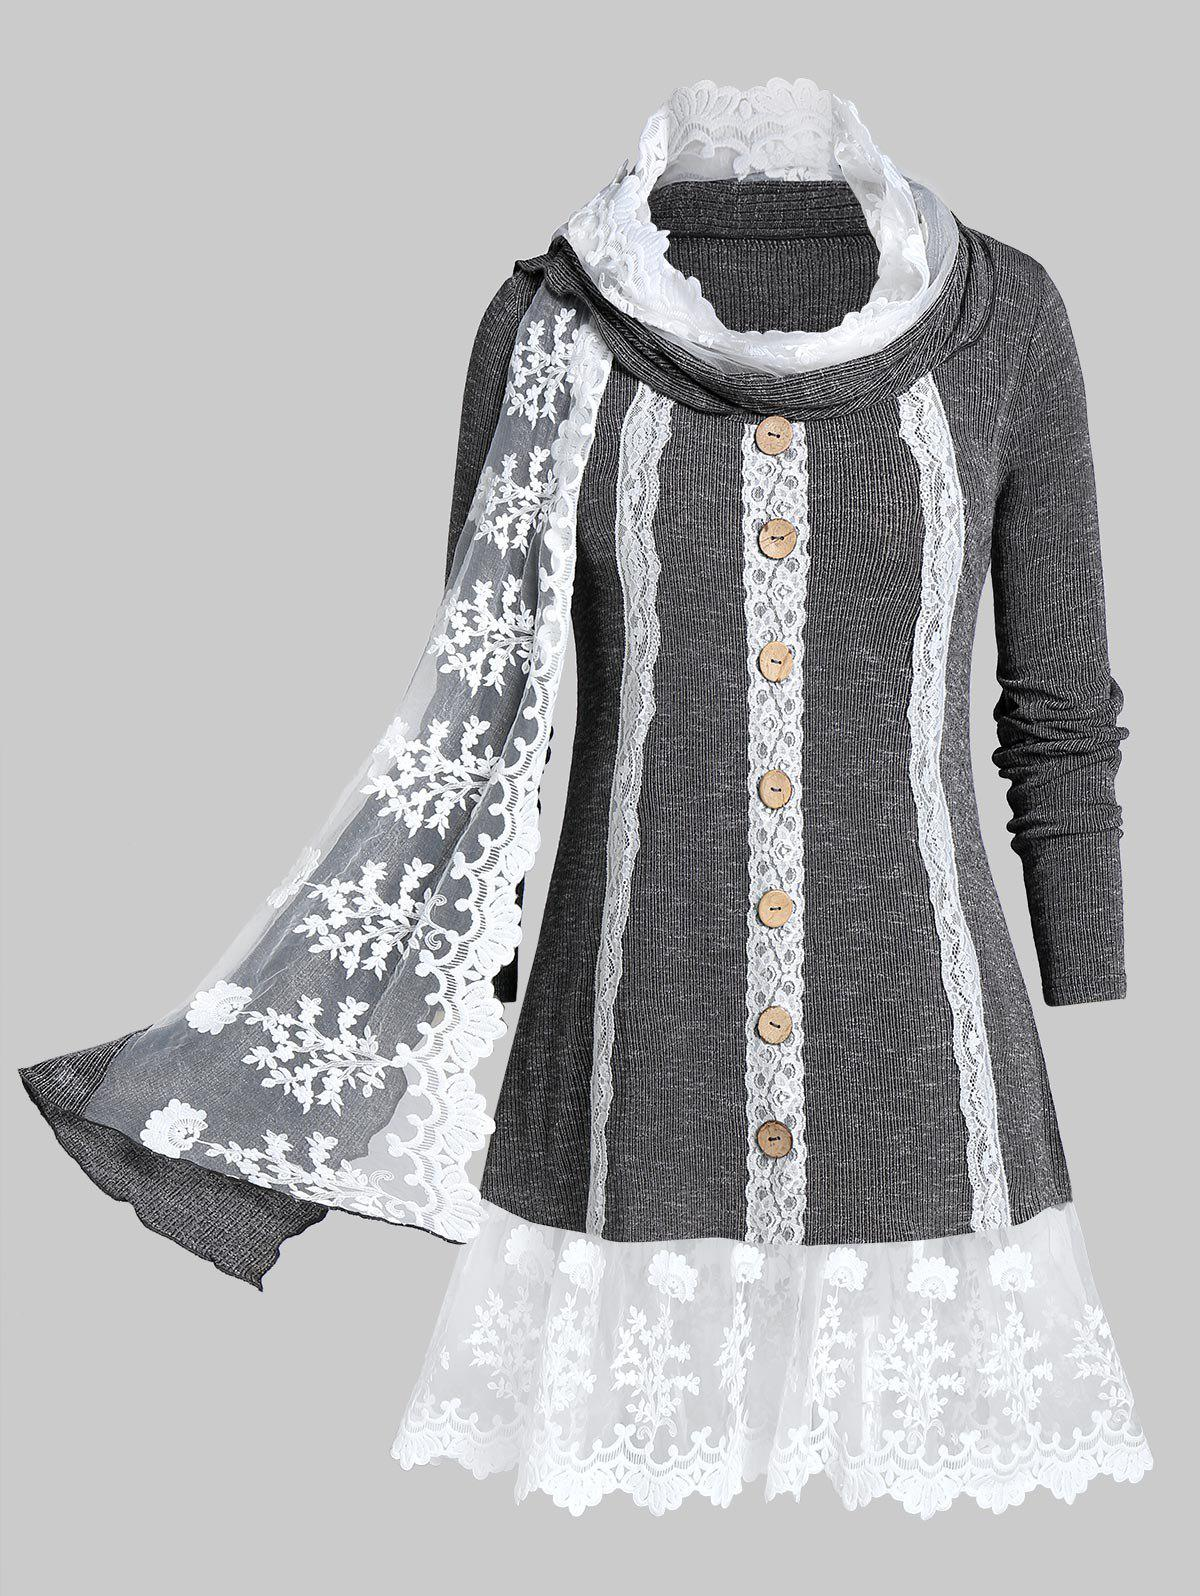 Plus Size Contrast Lace Marled Knitwear With Scarf - DARK GRAY 4X